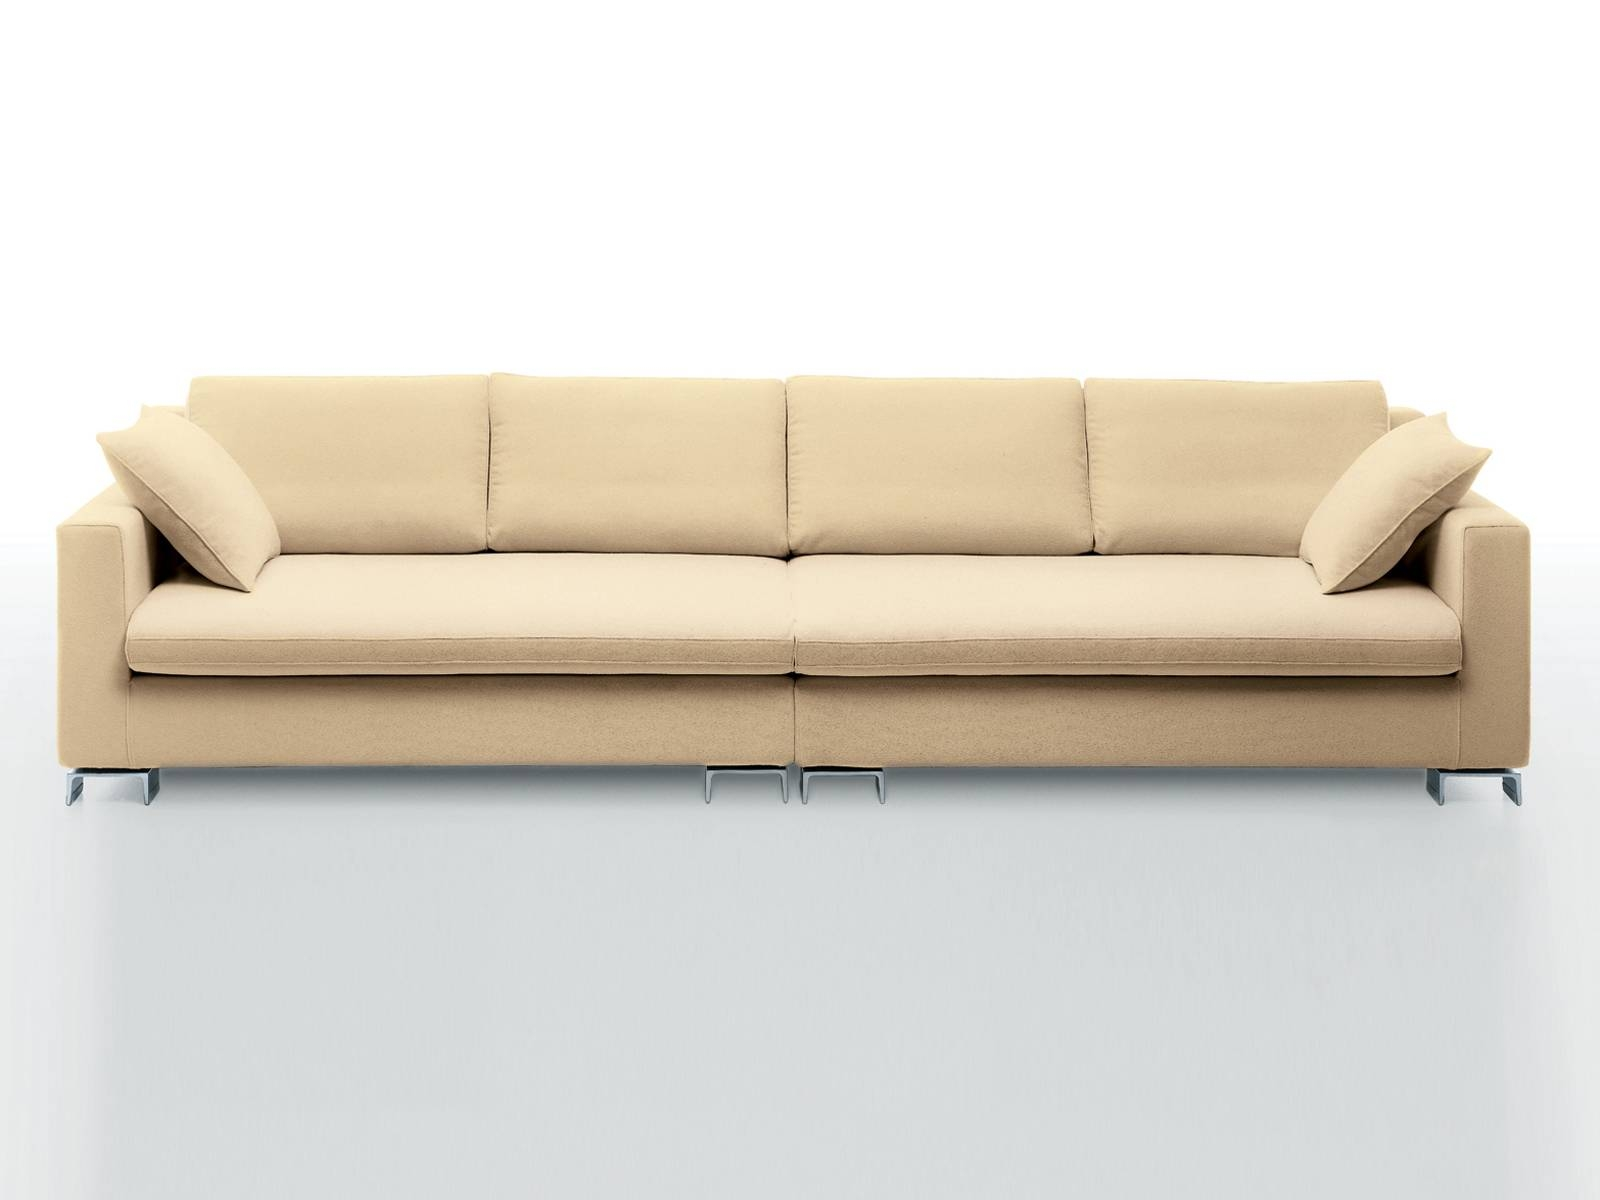 I 4 Mariani Sofas | Archiproducts with regard to Four Seater Sofas (Image 15 of 30)